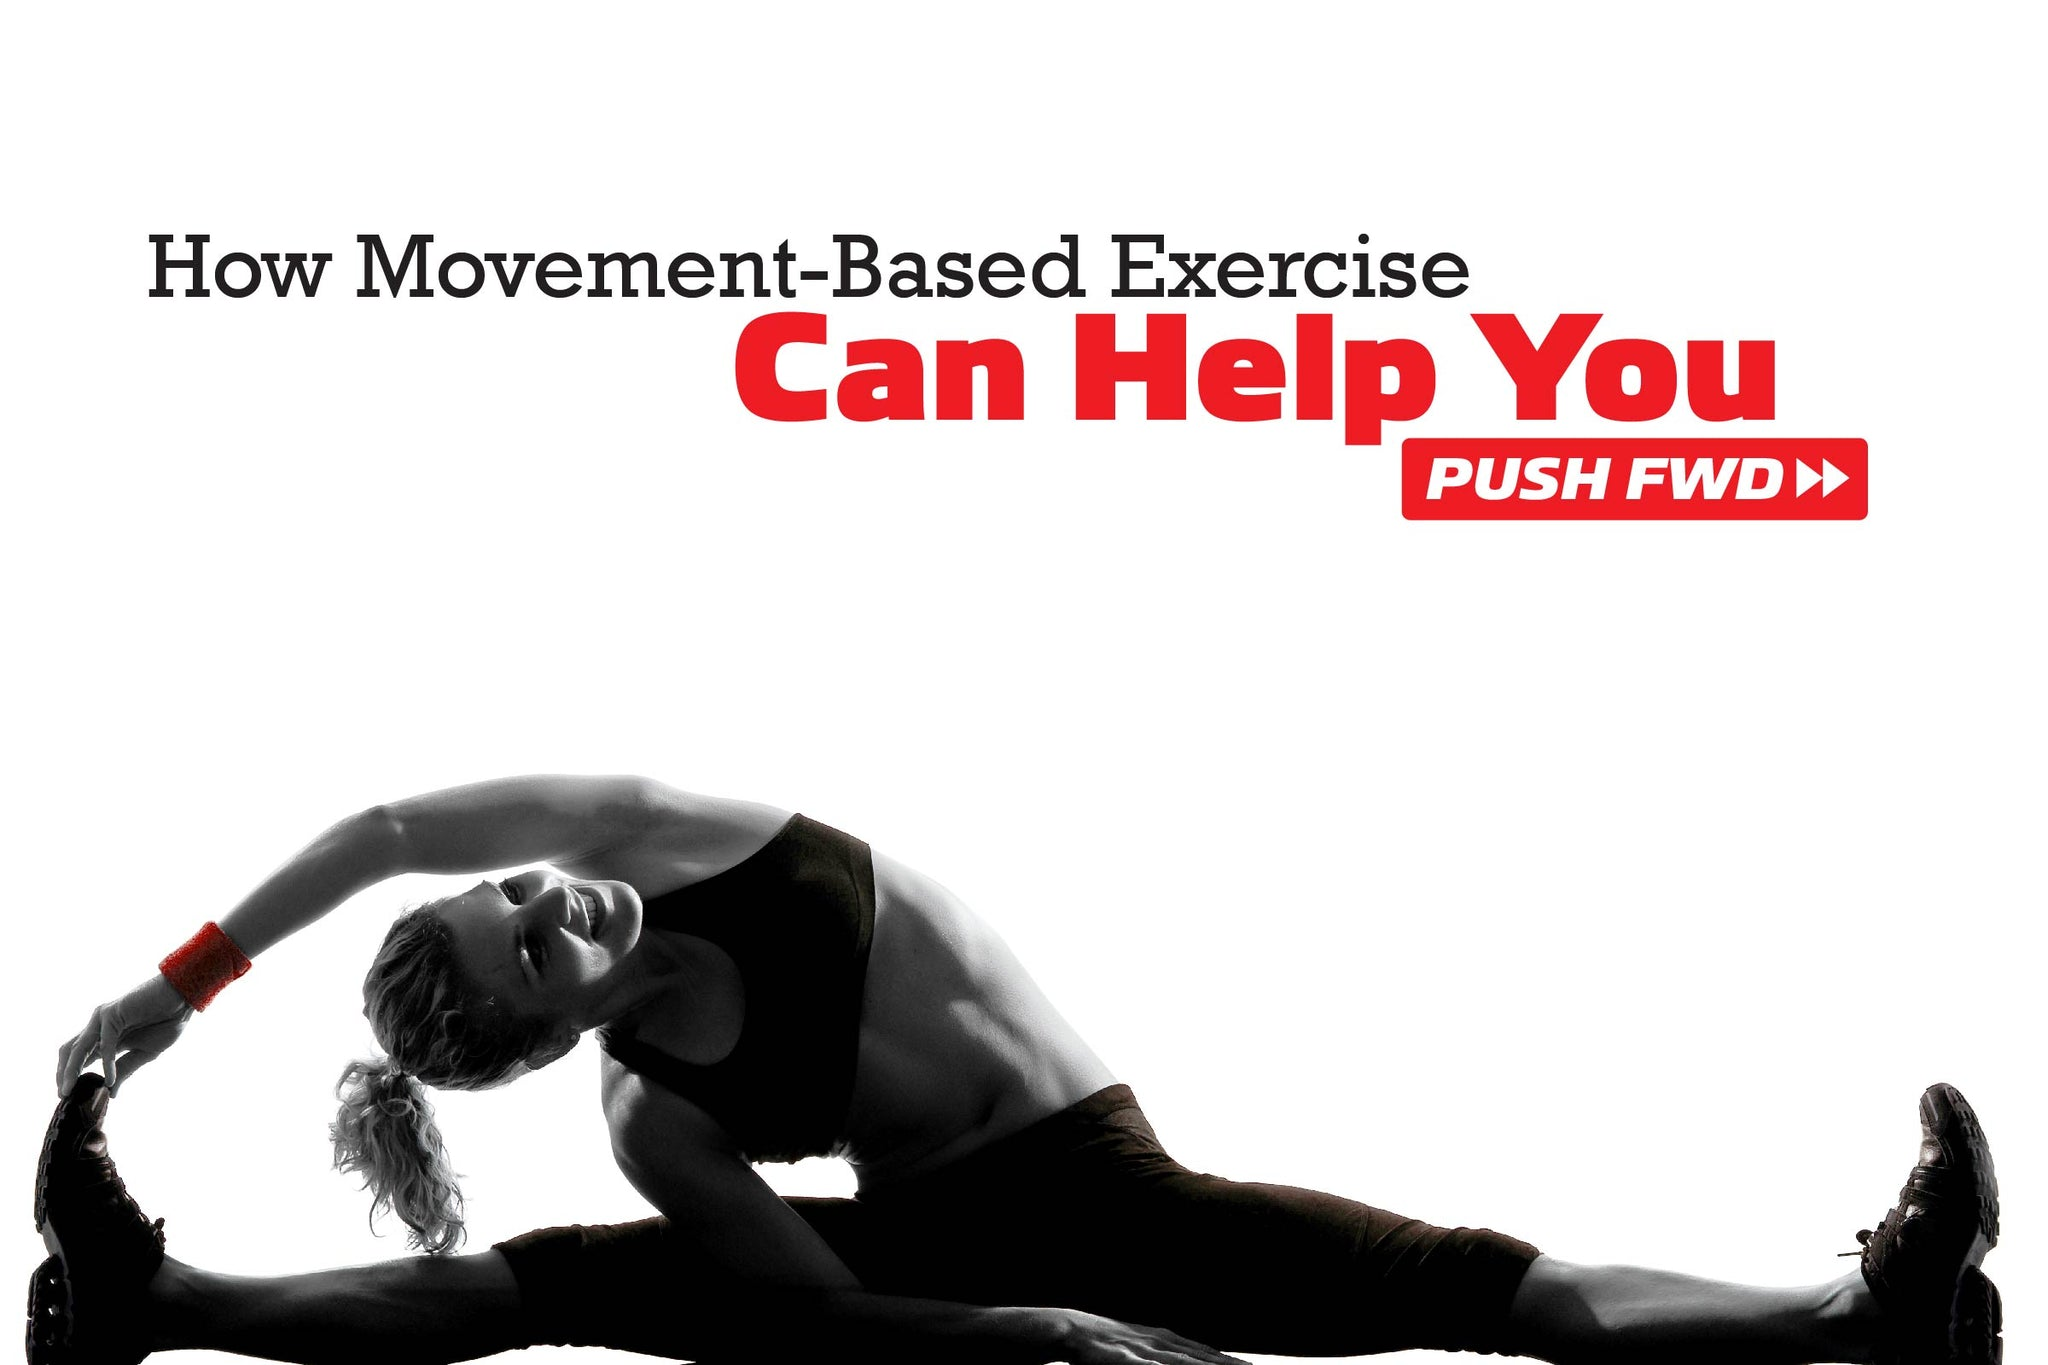 What is Movement-Based Exercise?